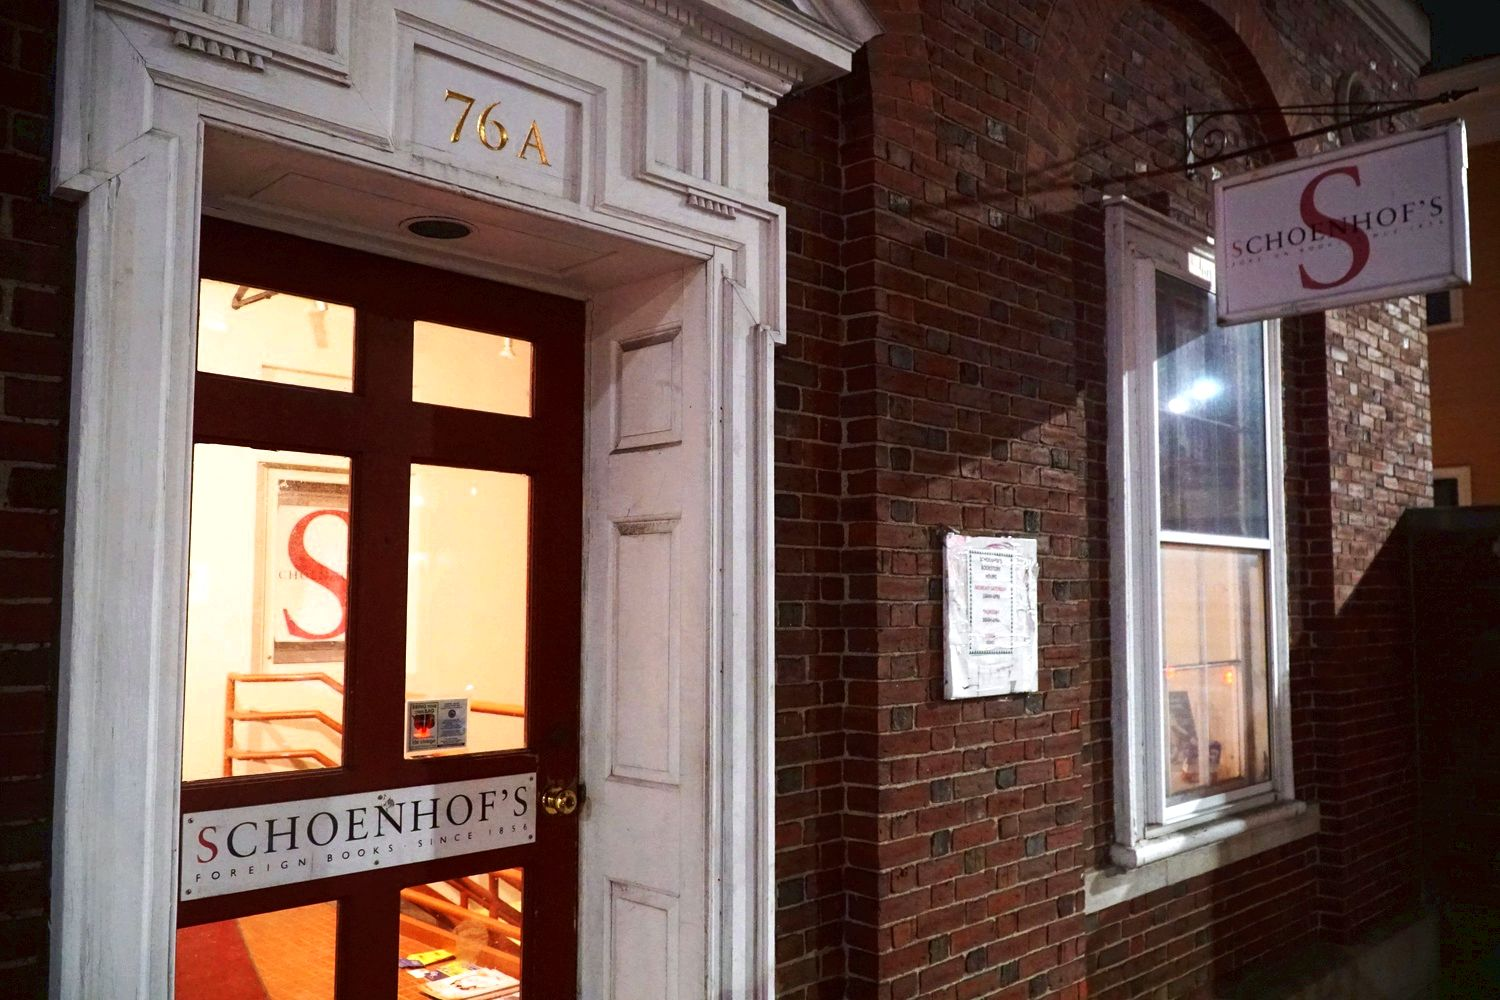 Schoenhof's foreign books to shut brick-and-mortar store right into